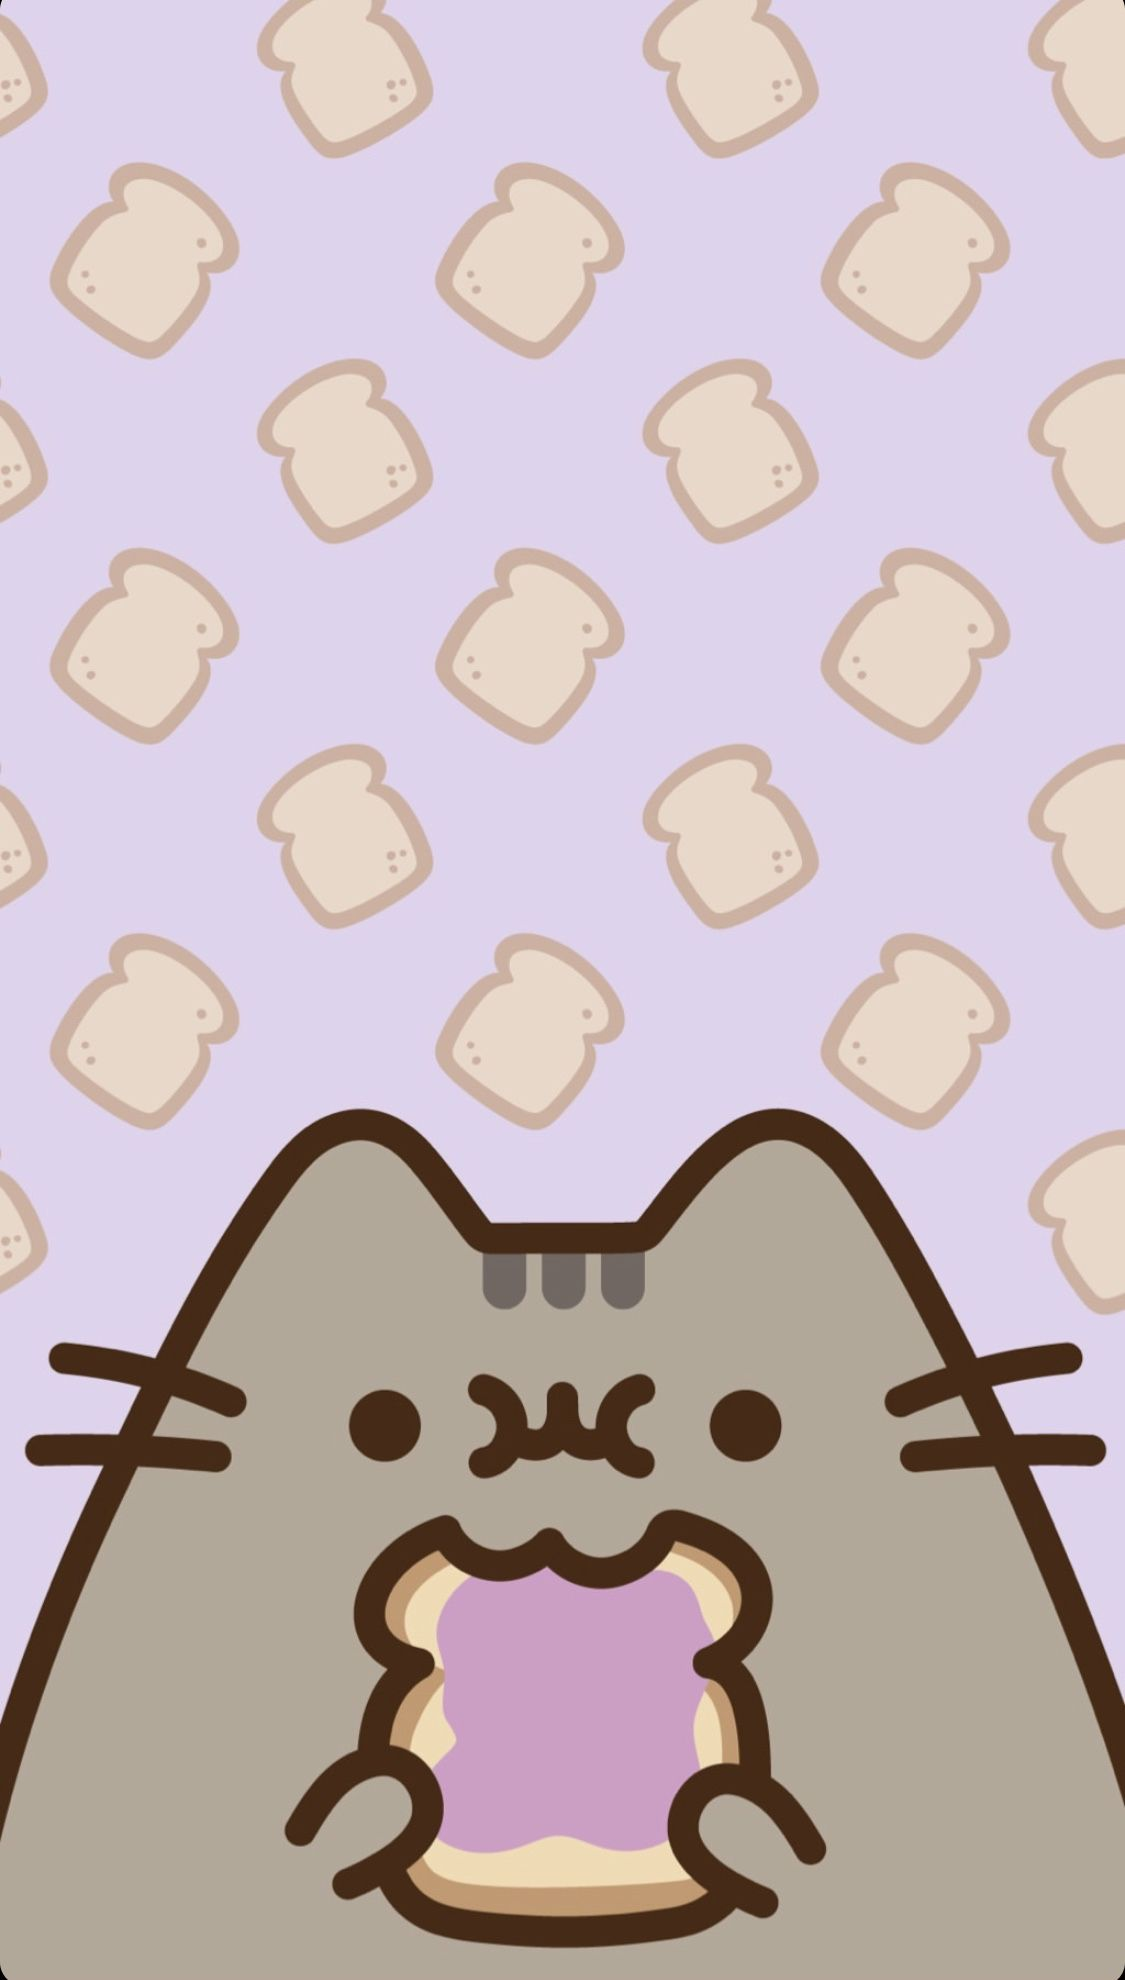 Pusheen Wallpaper Pusheen Cute Pusheen Cat Kawaii Wallpaper